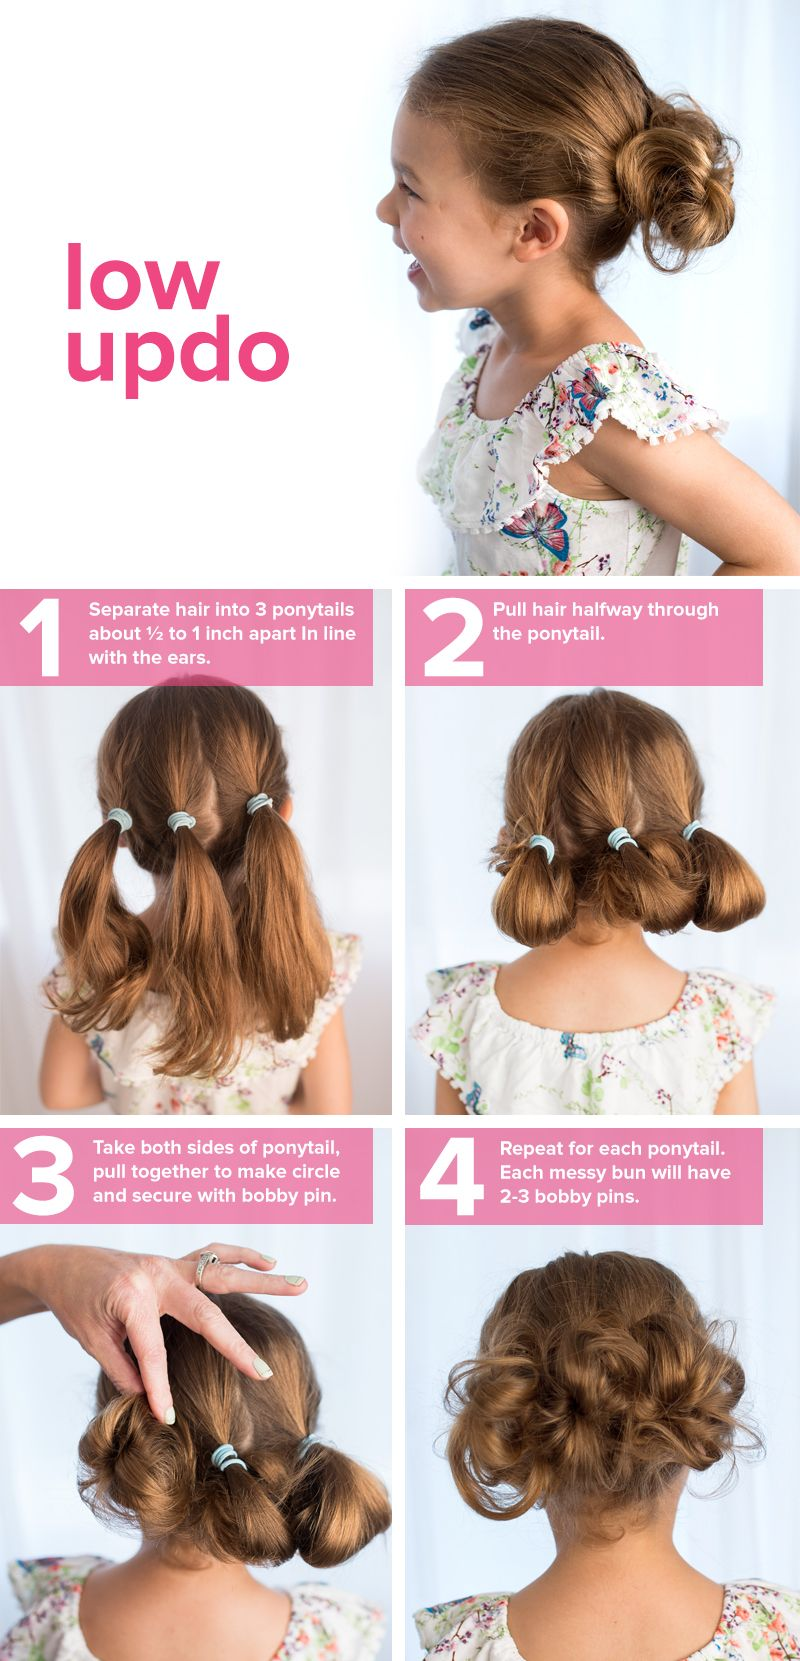 Fast And Easy Hairstyles Glamorous 5 Fast Easy Cute Hairstyles For Girls  Pinterest  Low Updo Updo